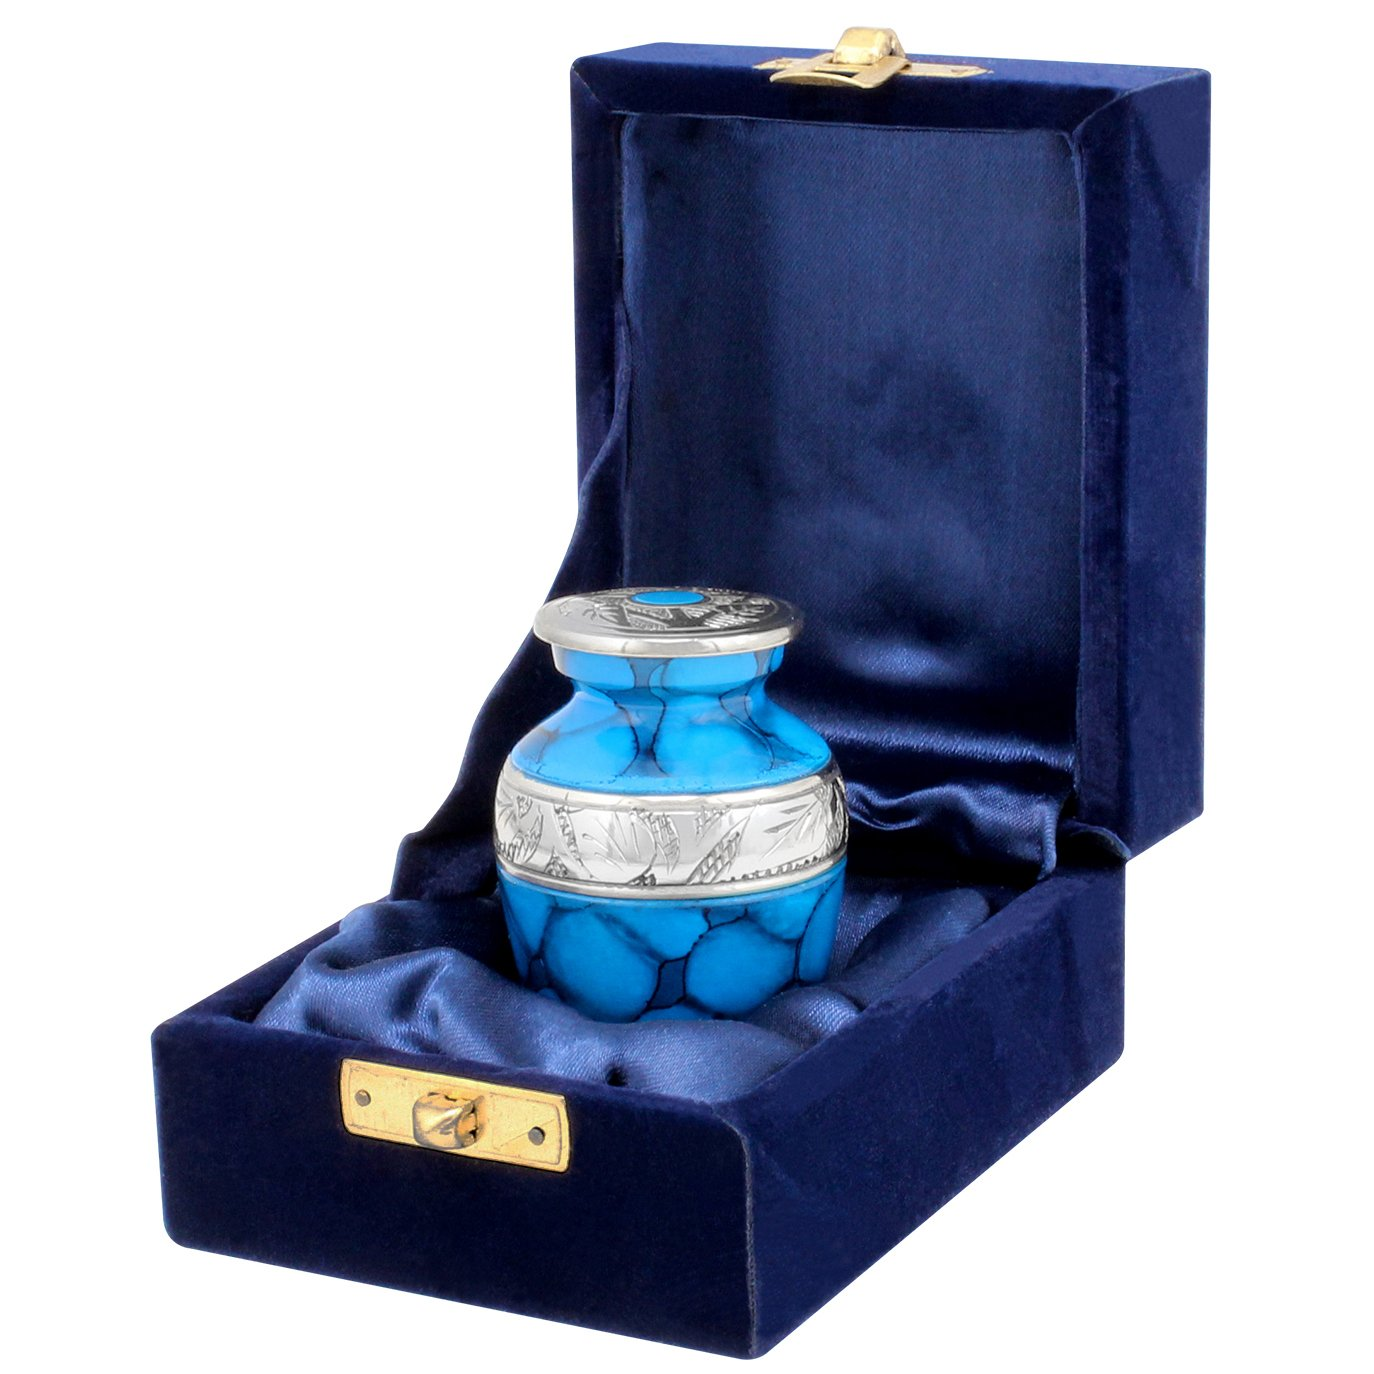 Forever Remembered Classic and Beautiful Blue Adult Cremation Urn for Human Ashes - an Elegant High Quality Large Urn with a Warm, Comforting Classy Finish to Honor Your Loved One - with Velvet Bag Trupoint Memorials